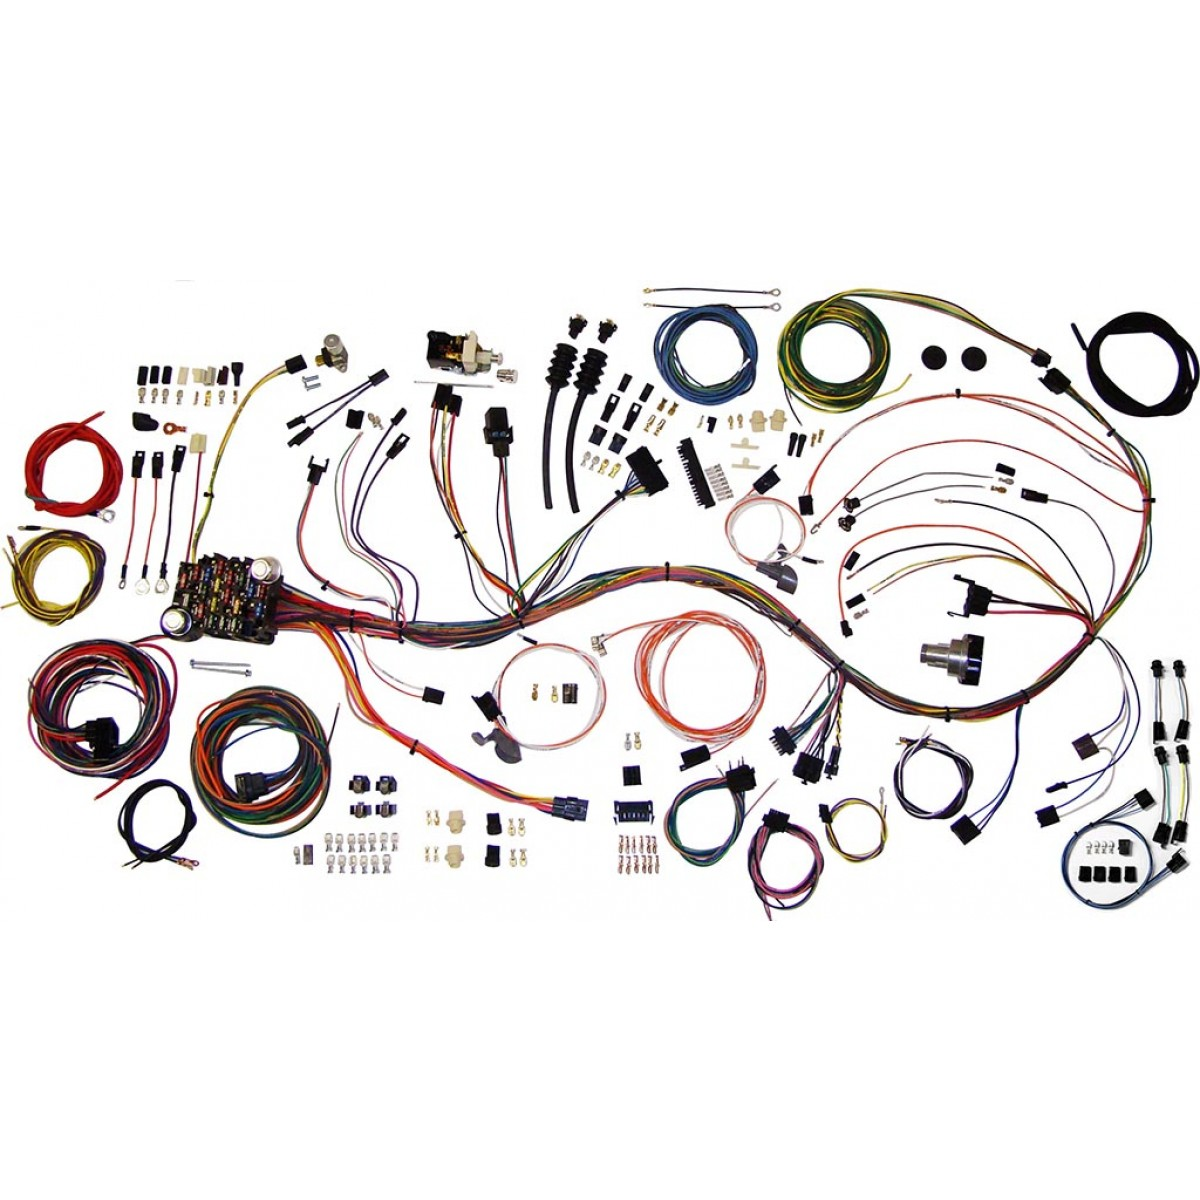 67 68 chevy truck wiring harness kit 1967 1968 chevy truck part 510333 chevy c10 c20 1967 1968 chevy c10 truck wiring harness c10 wiring harness kit chevy c10 wiring harness at panicattacktreatment.co